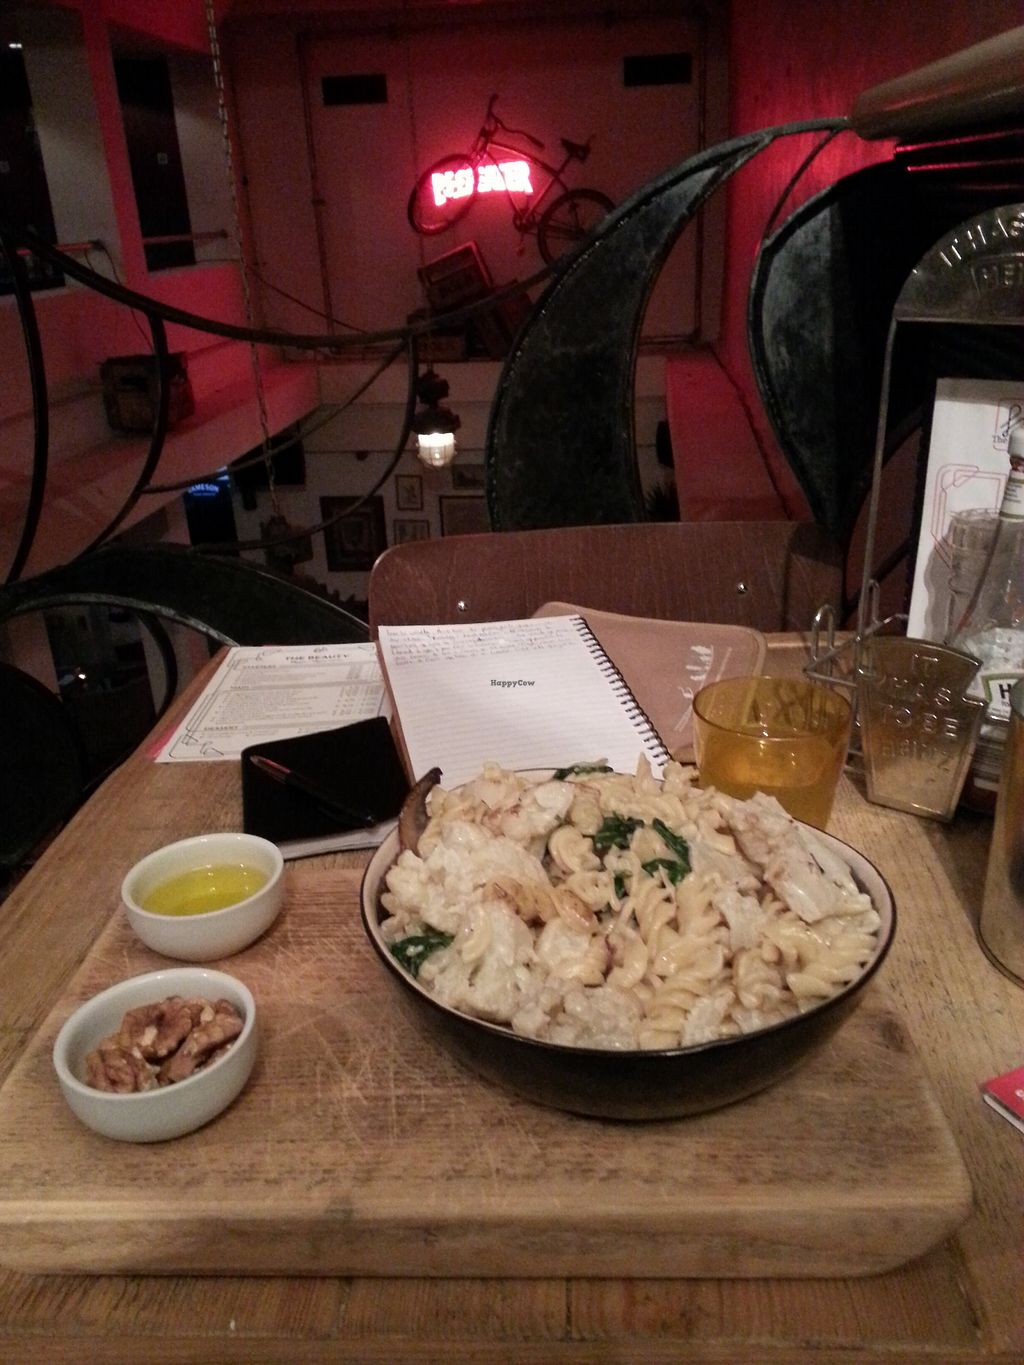 "Photo of The Lab  by <a href=""/members/profile/ManueEmmaLeTllc"">ManueEmmaLeTllc</a> <br/>creamy cauliflower pasta, with olive oil and nuts <br/> August 9, 2017  - <a href='/contact/abuse/image/91207/290859'>Report</a>"